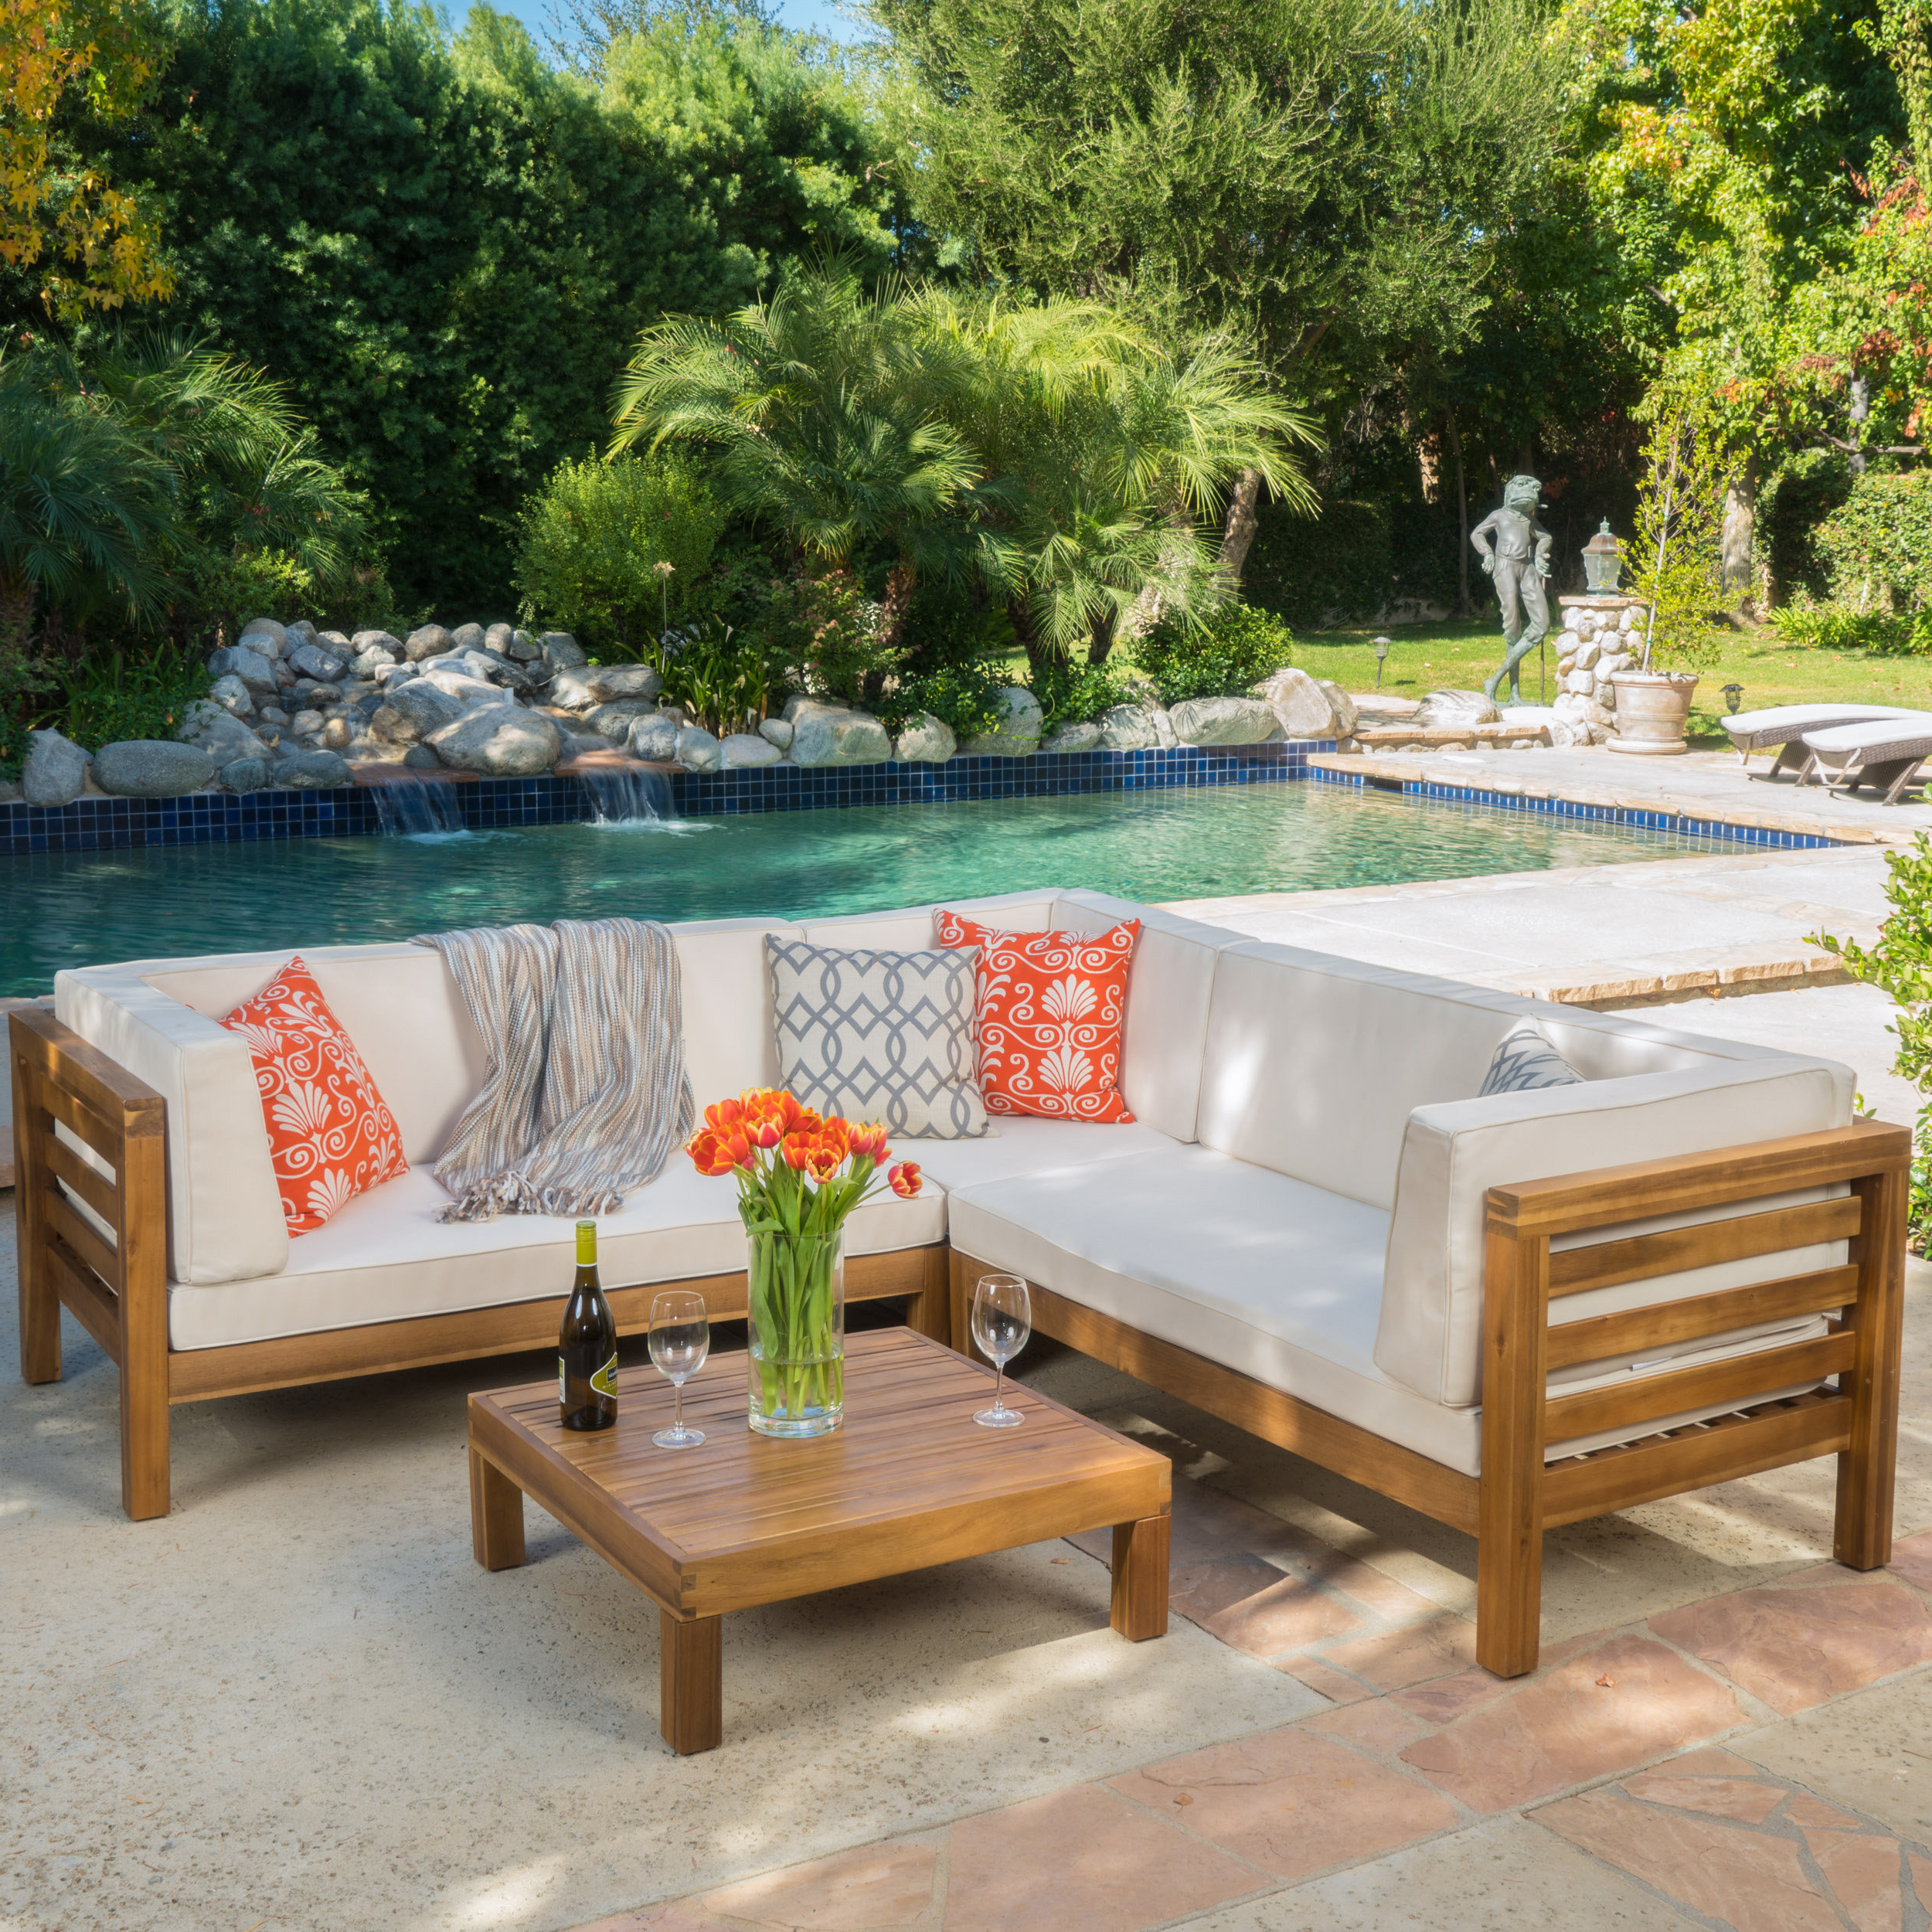 Farmhouse & Rustic Outdoor Sofa Sets (View 16 of 20)